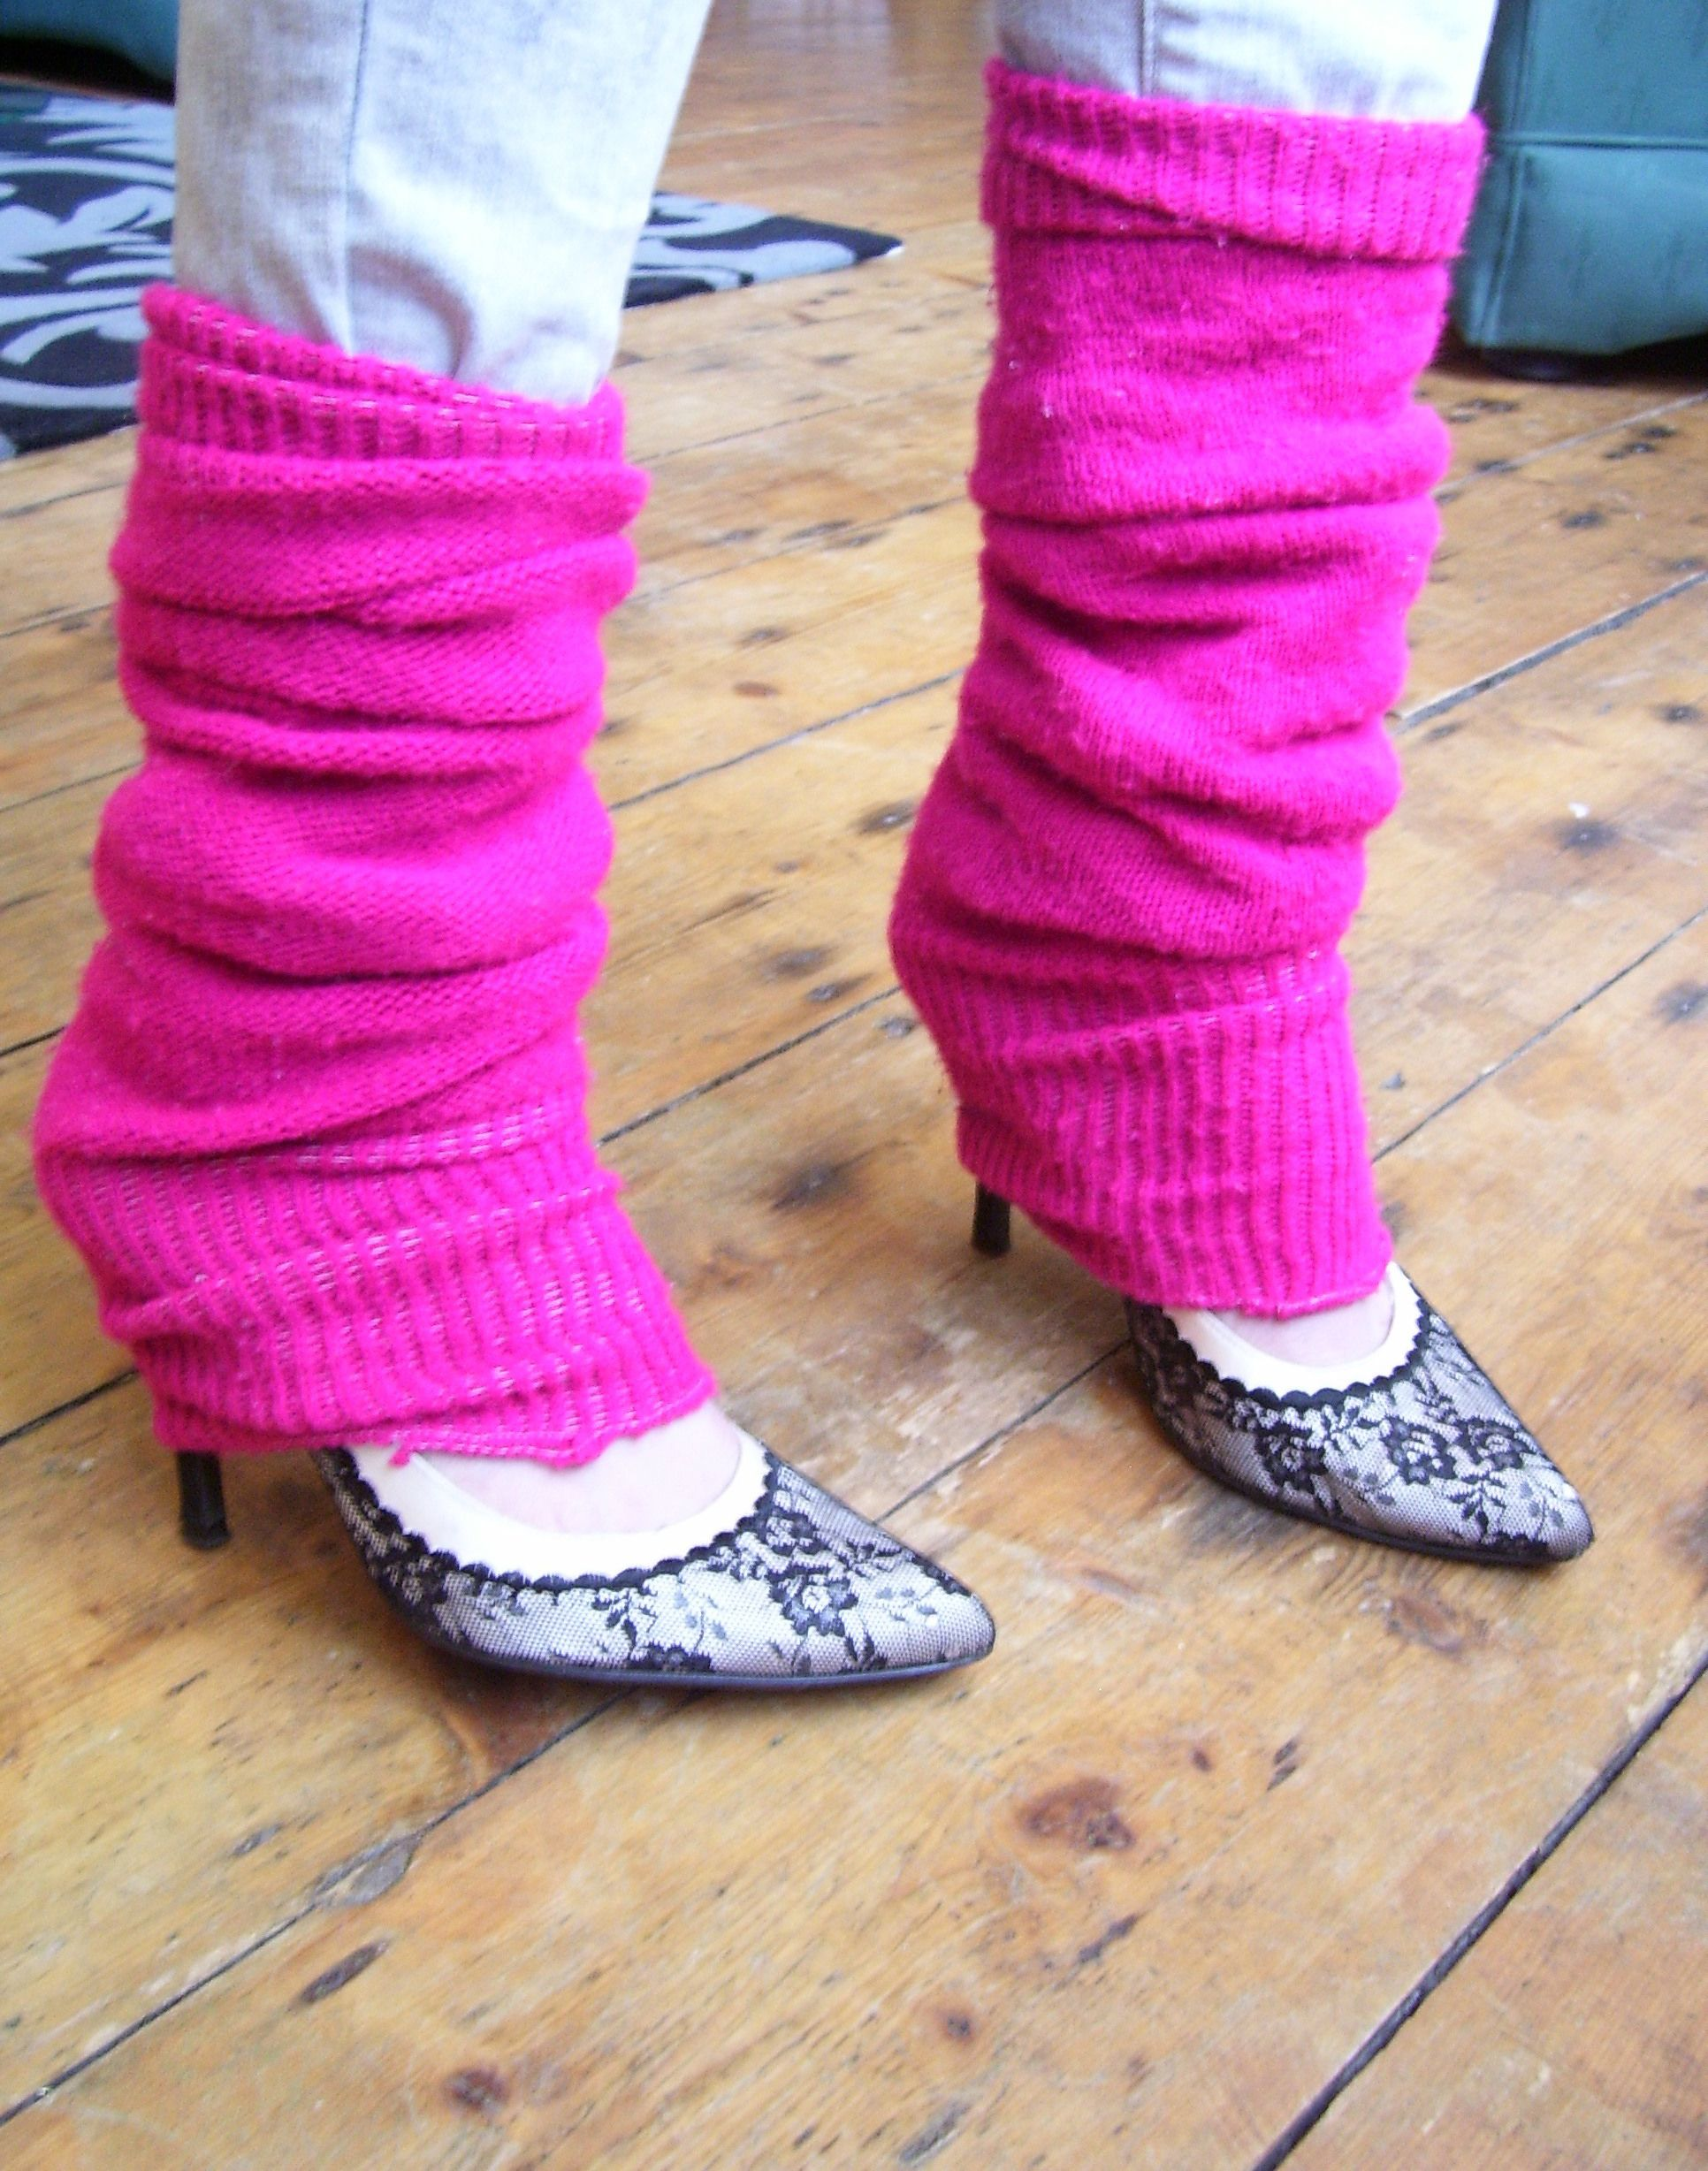 80's leg warmers with jeans - Google Search